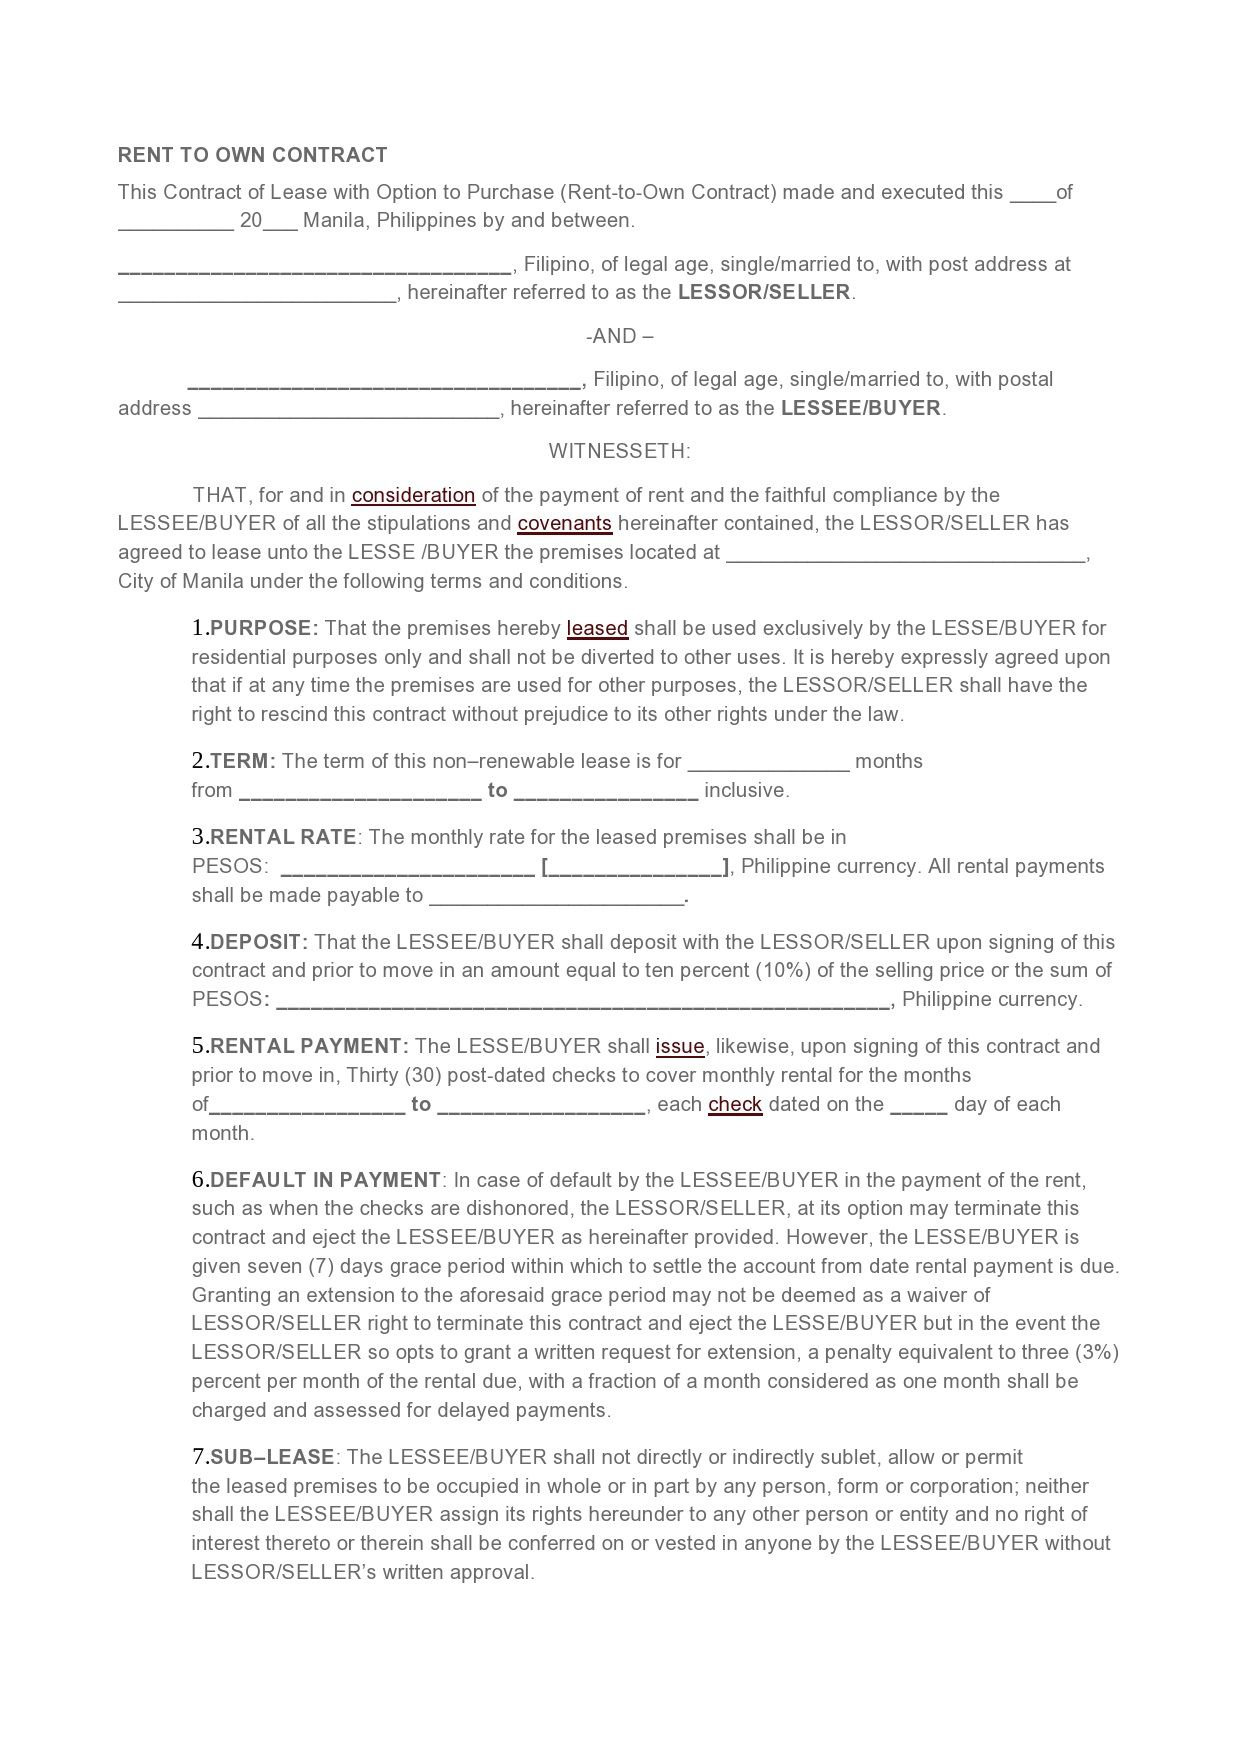 003 Awful Rent To Own Lease Template High Resolution  Example Agreement AlbertaFull